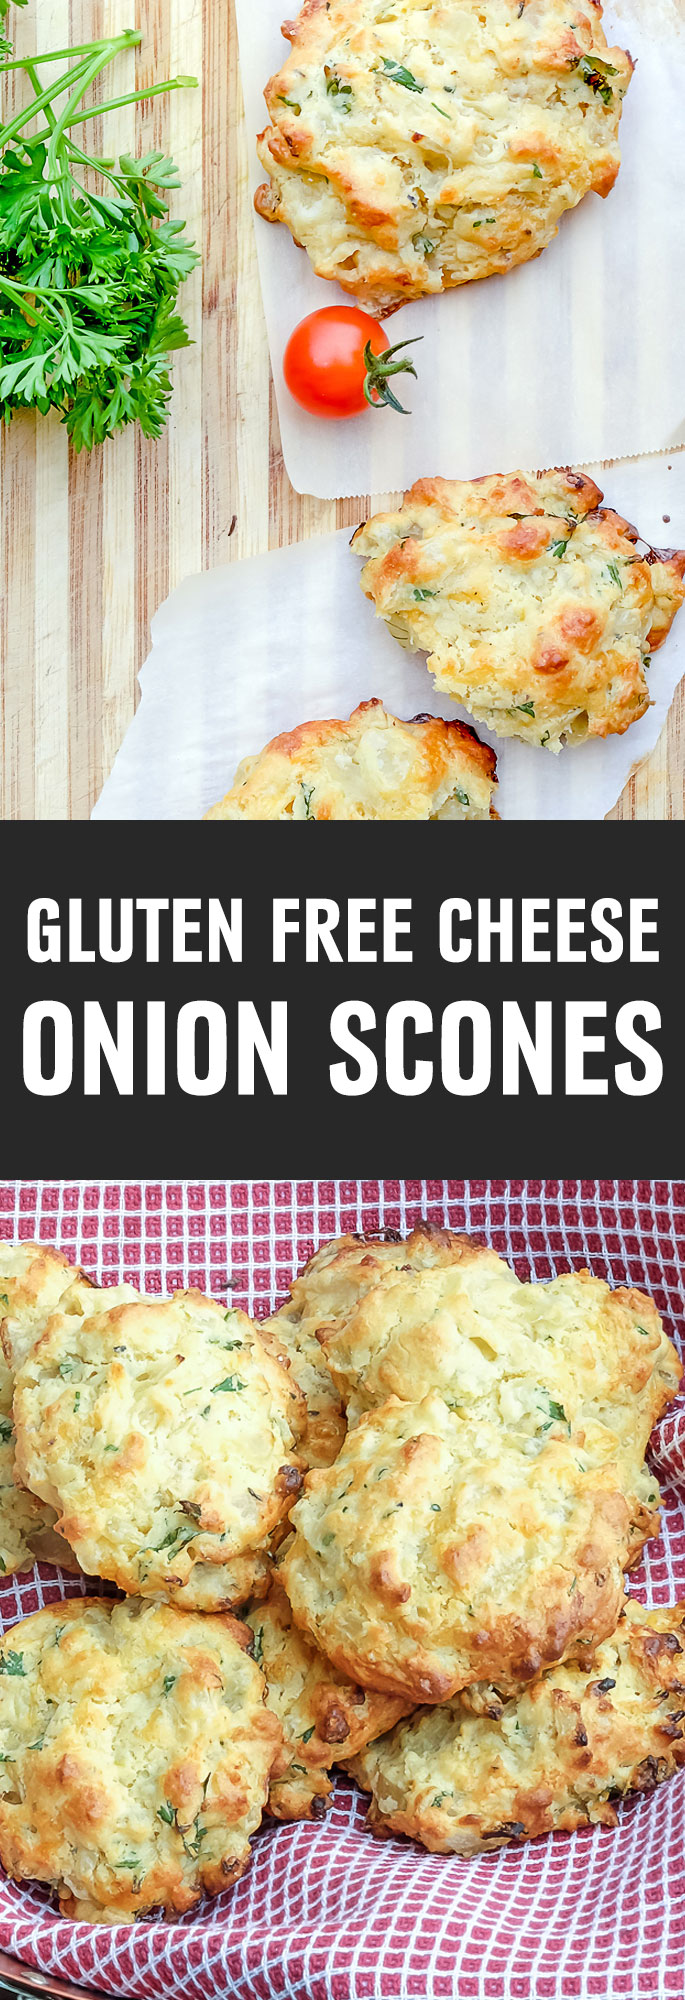 There is something appealing about cheese nestled in a perfectly crisp pastry gently flavored with onions and herbs. With only minutes of prep time, these scones are made in a jiffy. Shared via http://www.gluteninsight.com